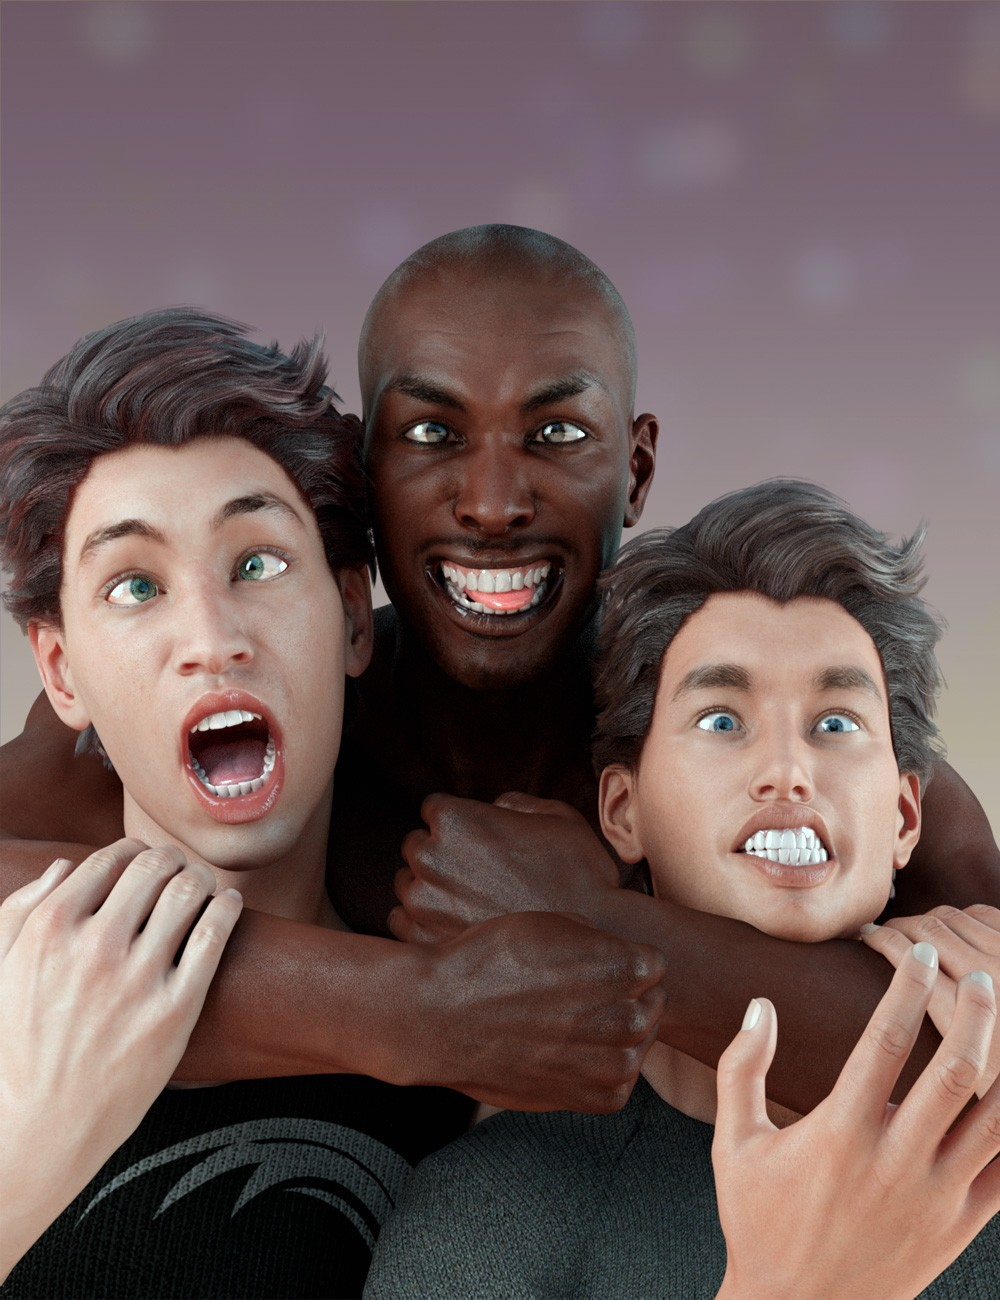 Grimaces - Morph Dial & One-Click Expressions for Genesis 3 Male